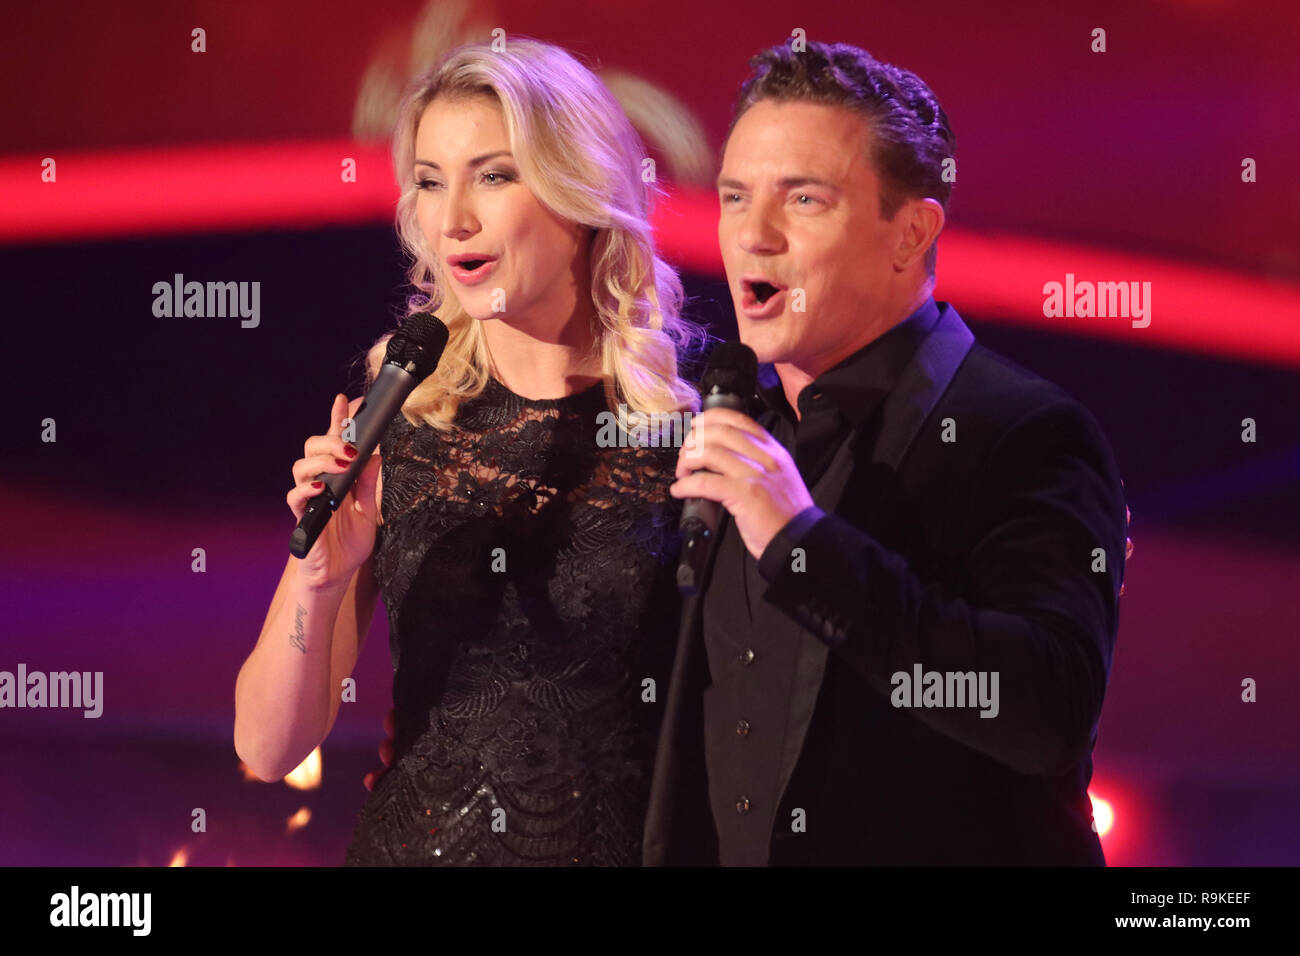 Guests at german tv show 'Schlager des Jahres 2018' in Suhl  Featuring: Anna Carina Woitschak & Stefan Mross Where: Suhl, Germany When: 23 Nov 2018 Credit: Becher/WENN.com - Stock Image